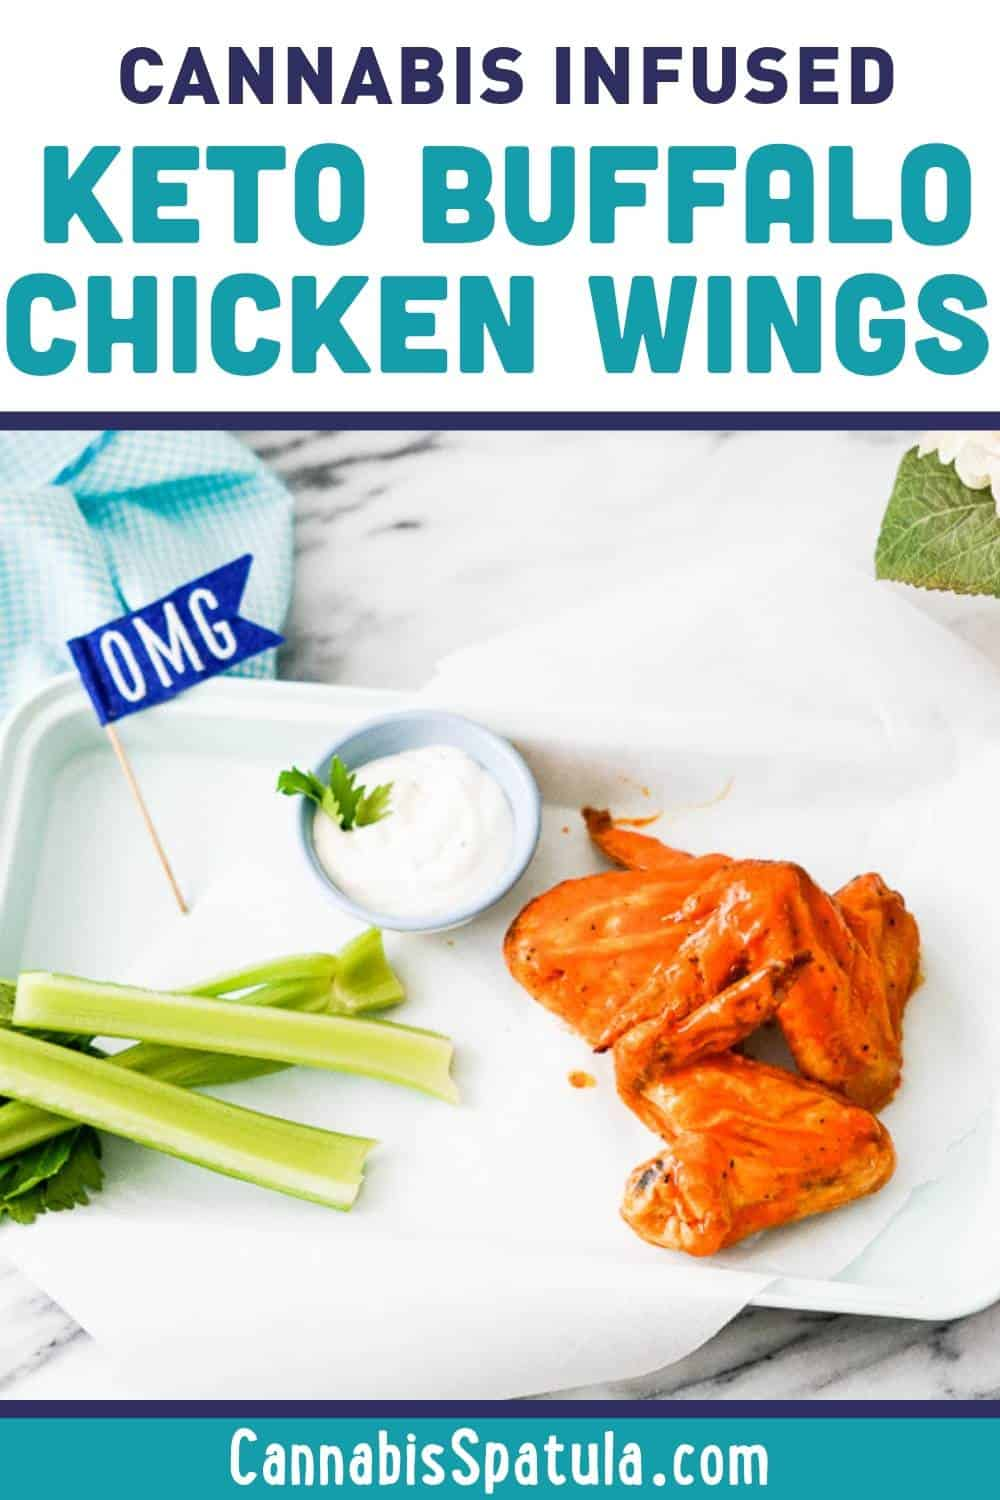 Keto Cannabis Buffalo Chicken Wings Recipe Pinnable Image